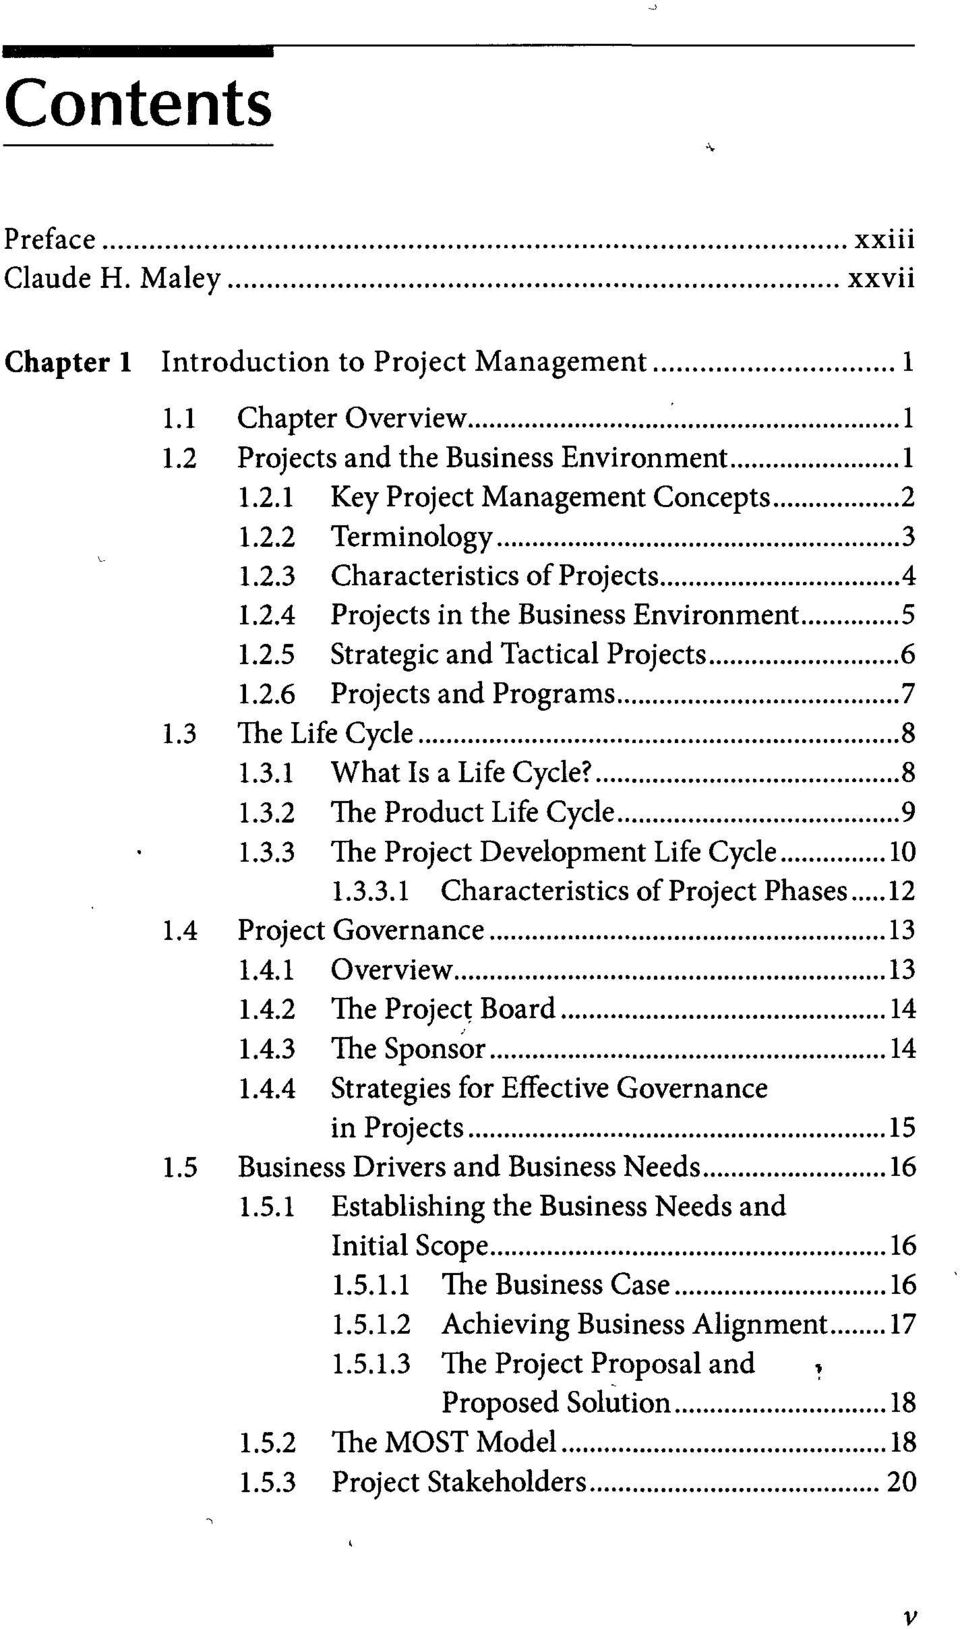 8 1.3.2 The Product Life Cycle 9 1.3.3 The Project Development Life Cycle 10 1.3.3.1 Characteristics of Project Phases 12 1.4 Project Governance 13 1.4.1 Overview 13 1.4.2 The Project Board 14 1.4.3 The Sponsor 14 1.